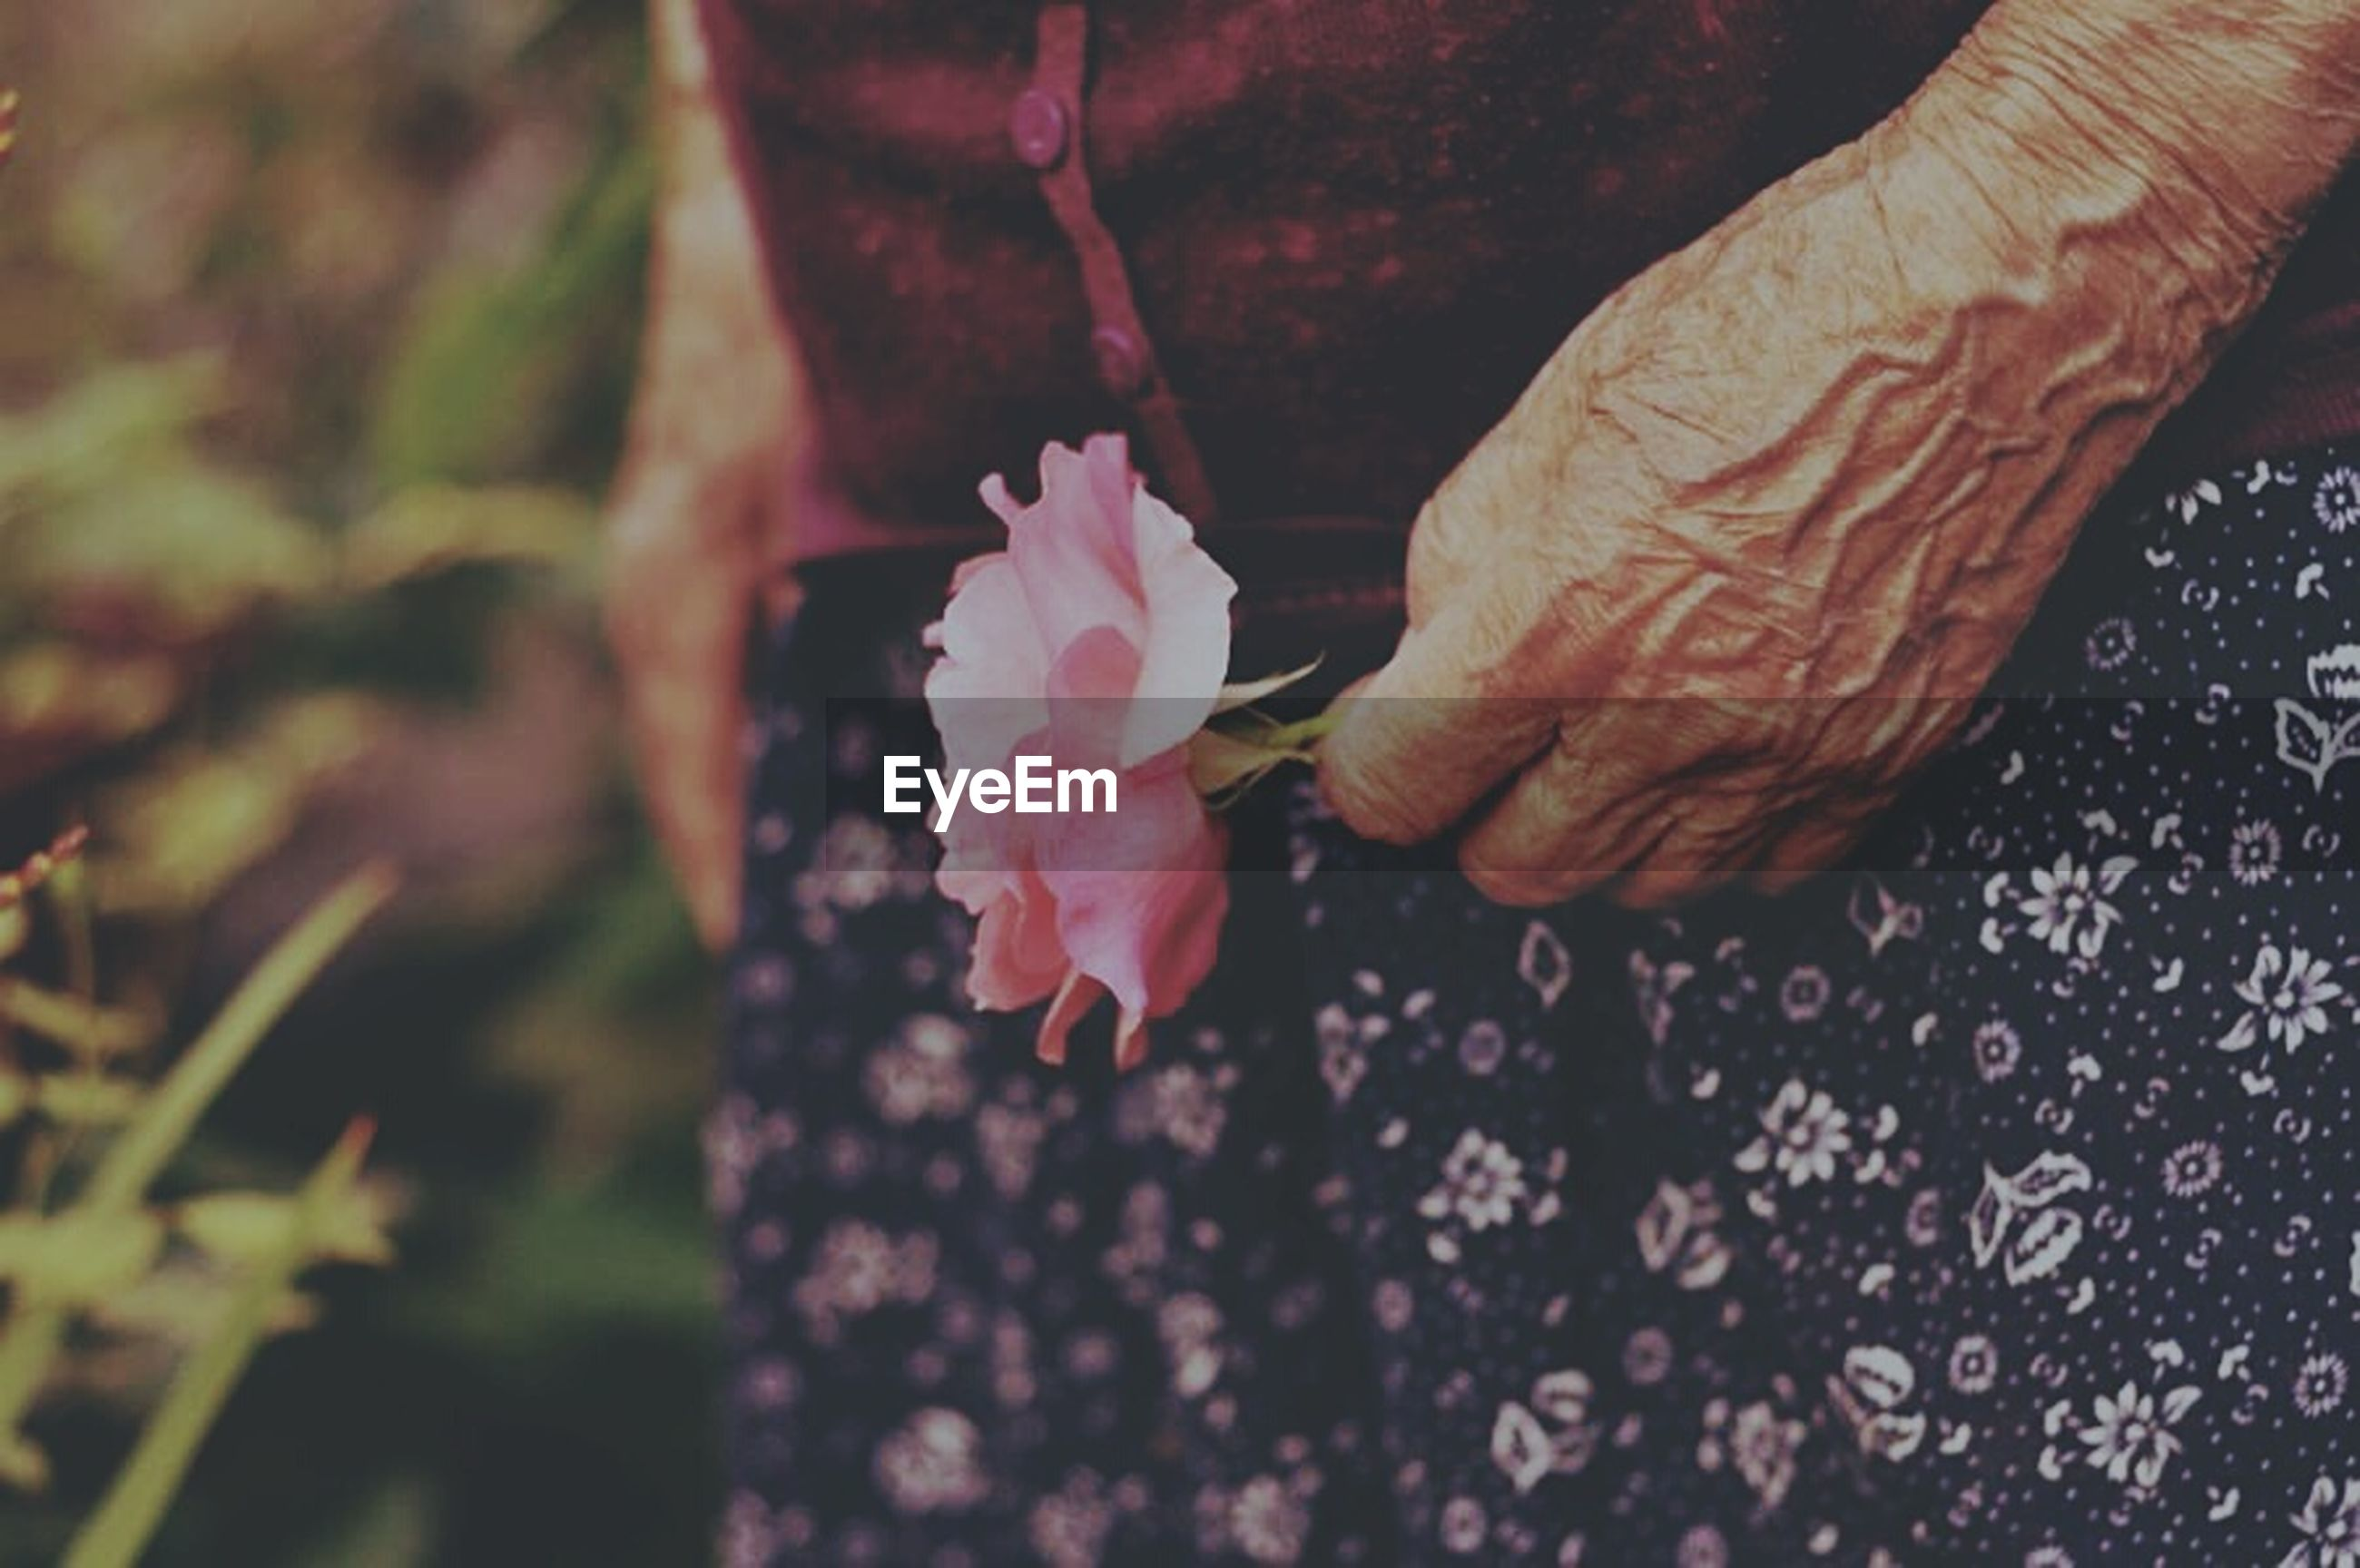 person, freshness, close-up, flower, part of, holding, cropped, petal, focus on foreground, fragility, selective focus, human finger, unrecognizable person, nature, day, pink color, high angle view